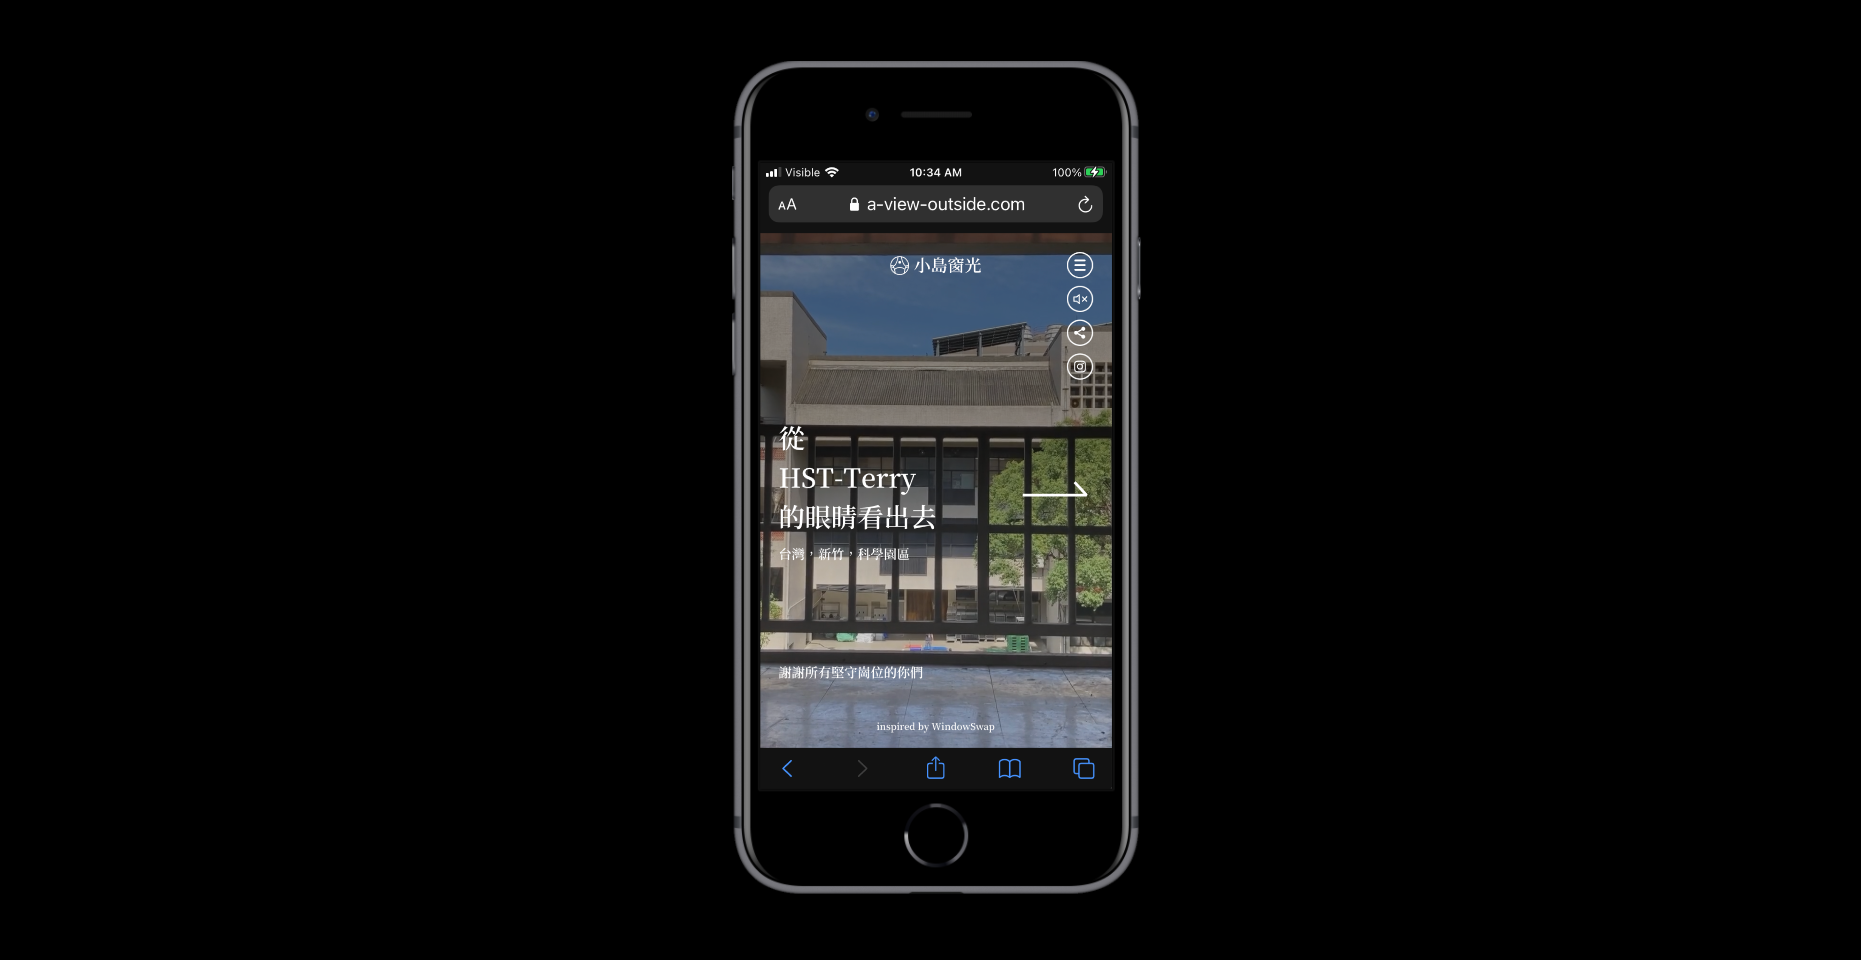 the mockup of mobile version of the website. The background image is a scene from the floor of balcony, and a building across the street.